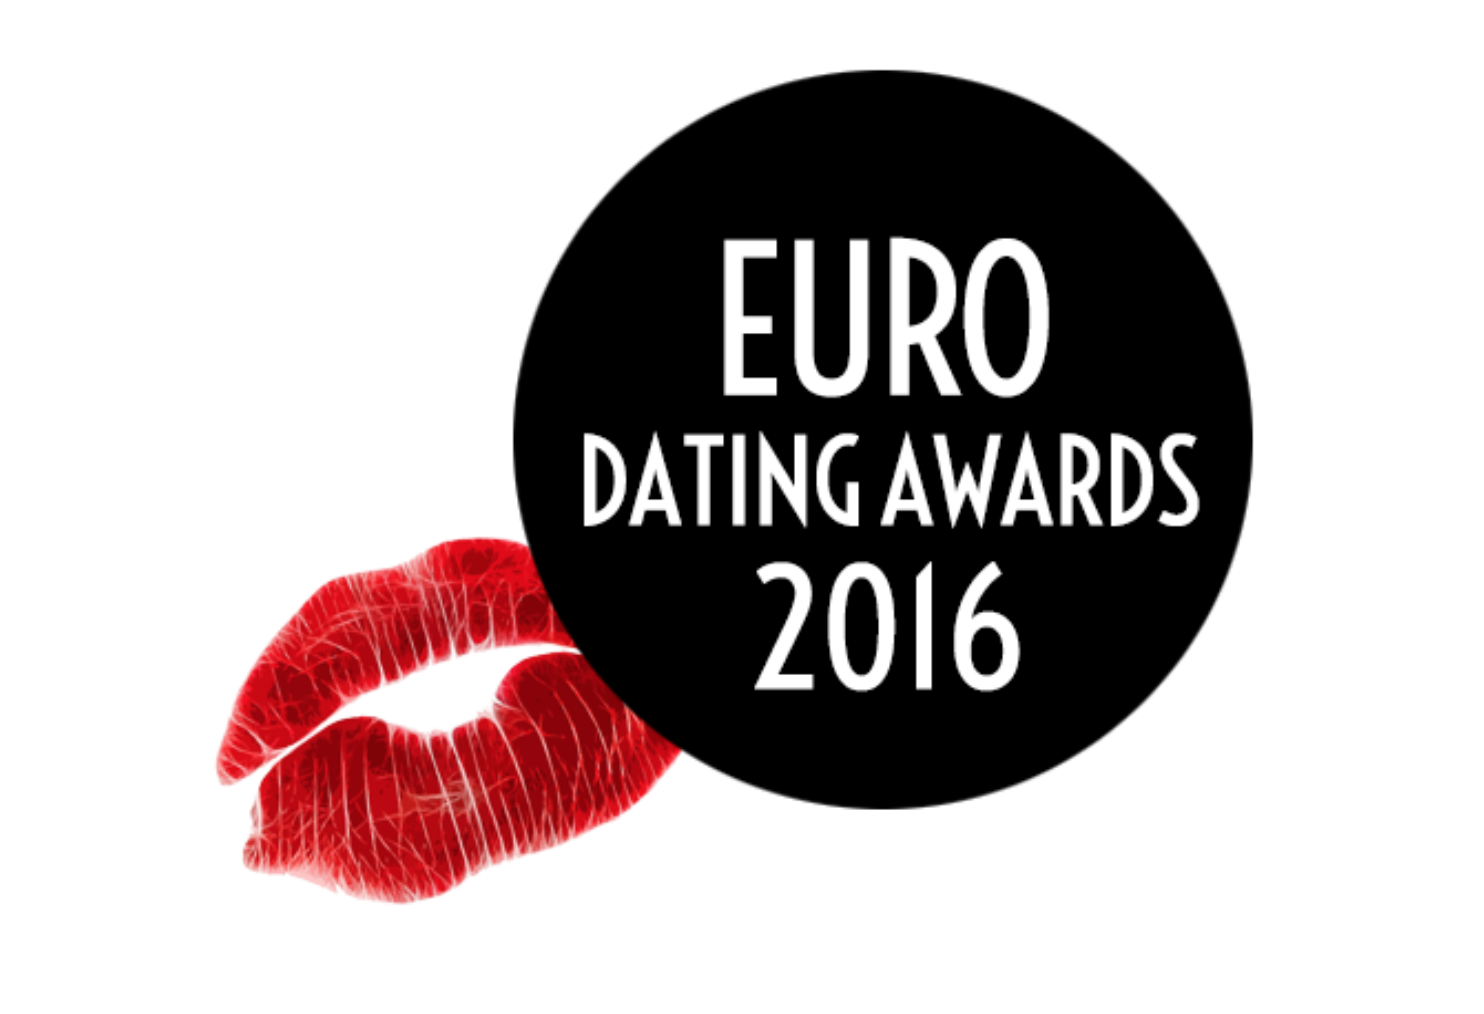 european dating awards